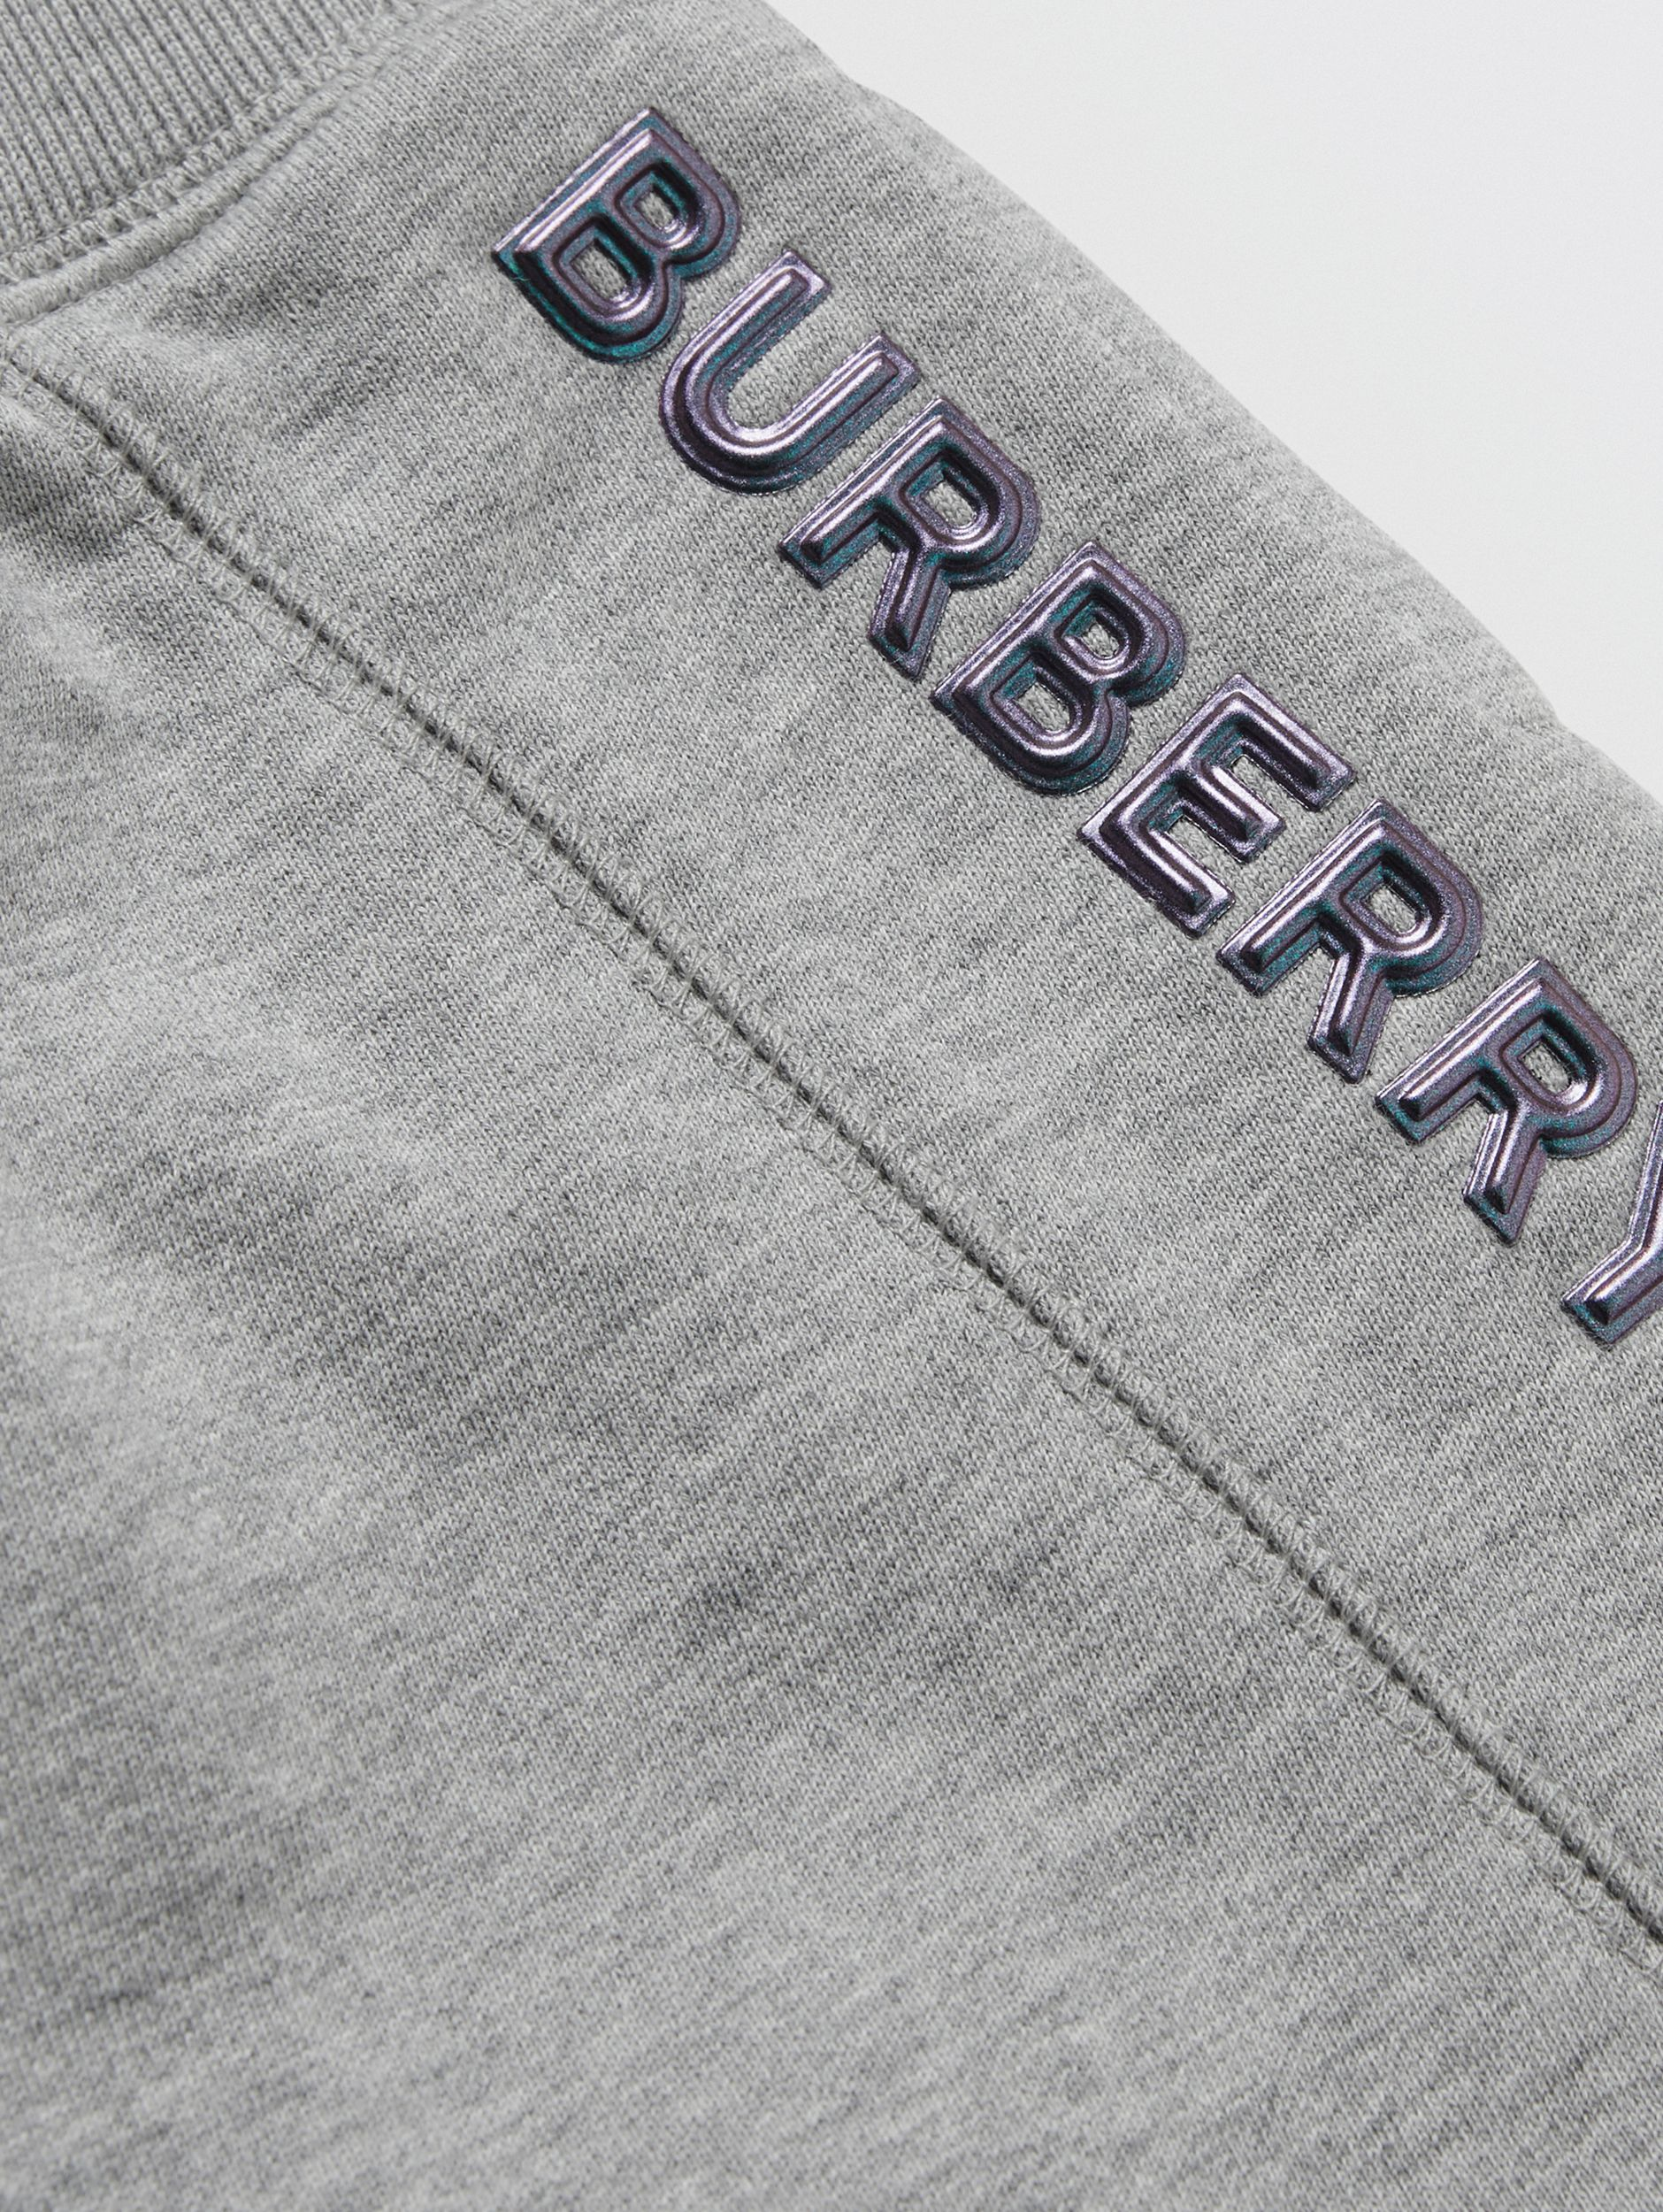 Logo Detail Cotton Drawcord Shorts in Grey Melange - Children | Burberry - 2